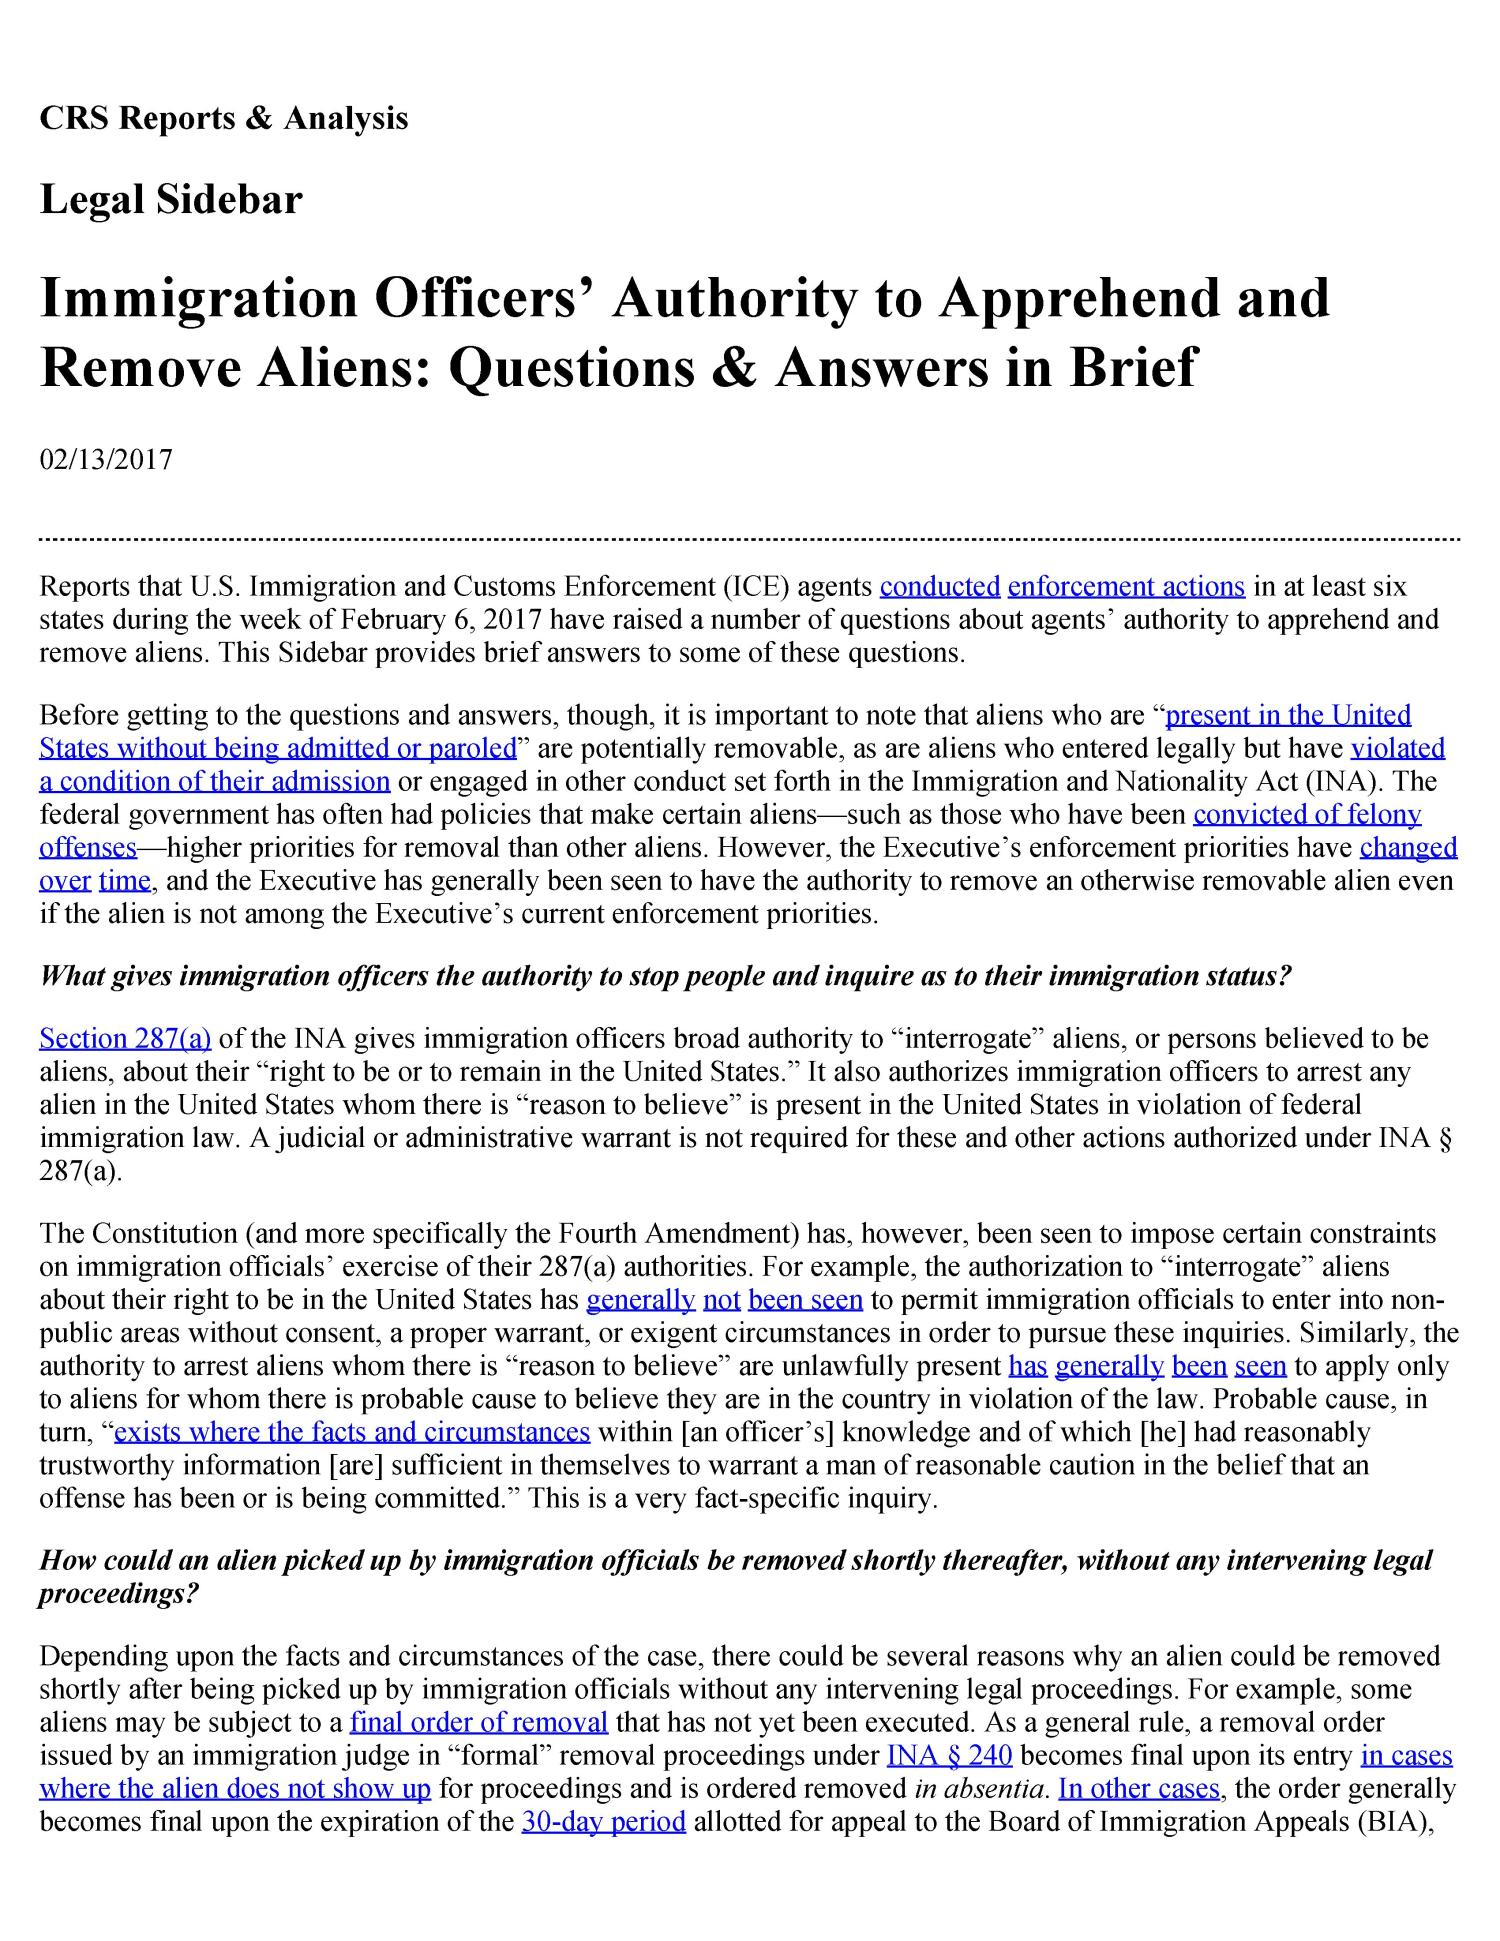 eisentrager law for immigrants and aliens Johnson v eisentrager the case is before us only on issues of law and the civil and property rights of immigrants or transients of.